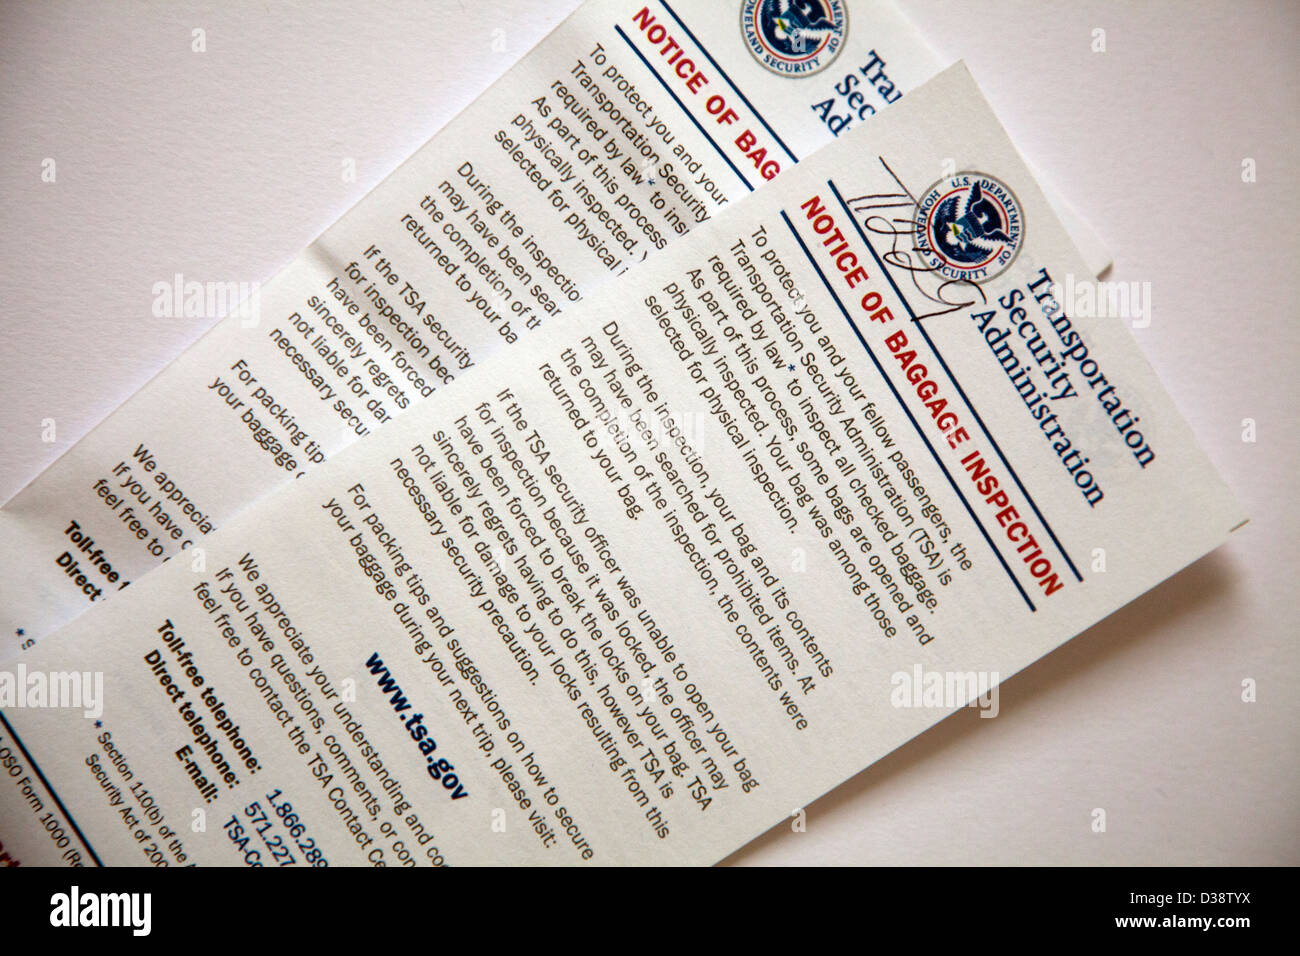 Transportation Security Administration forms placed in Luggage after USA customs inspected it. - Stock Image